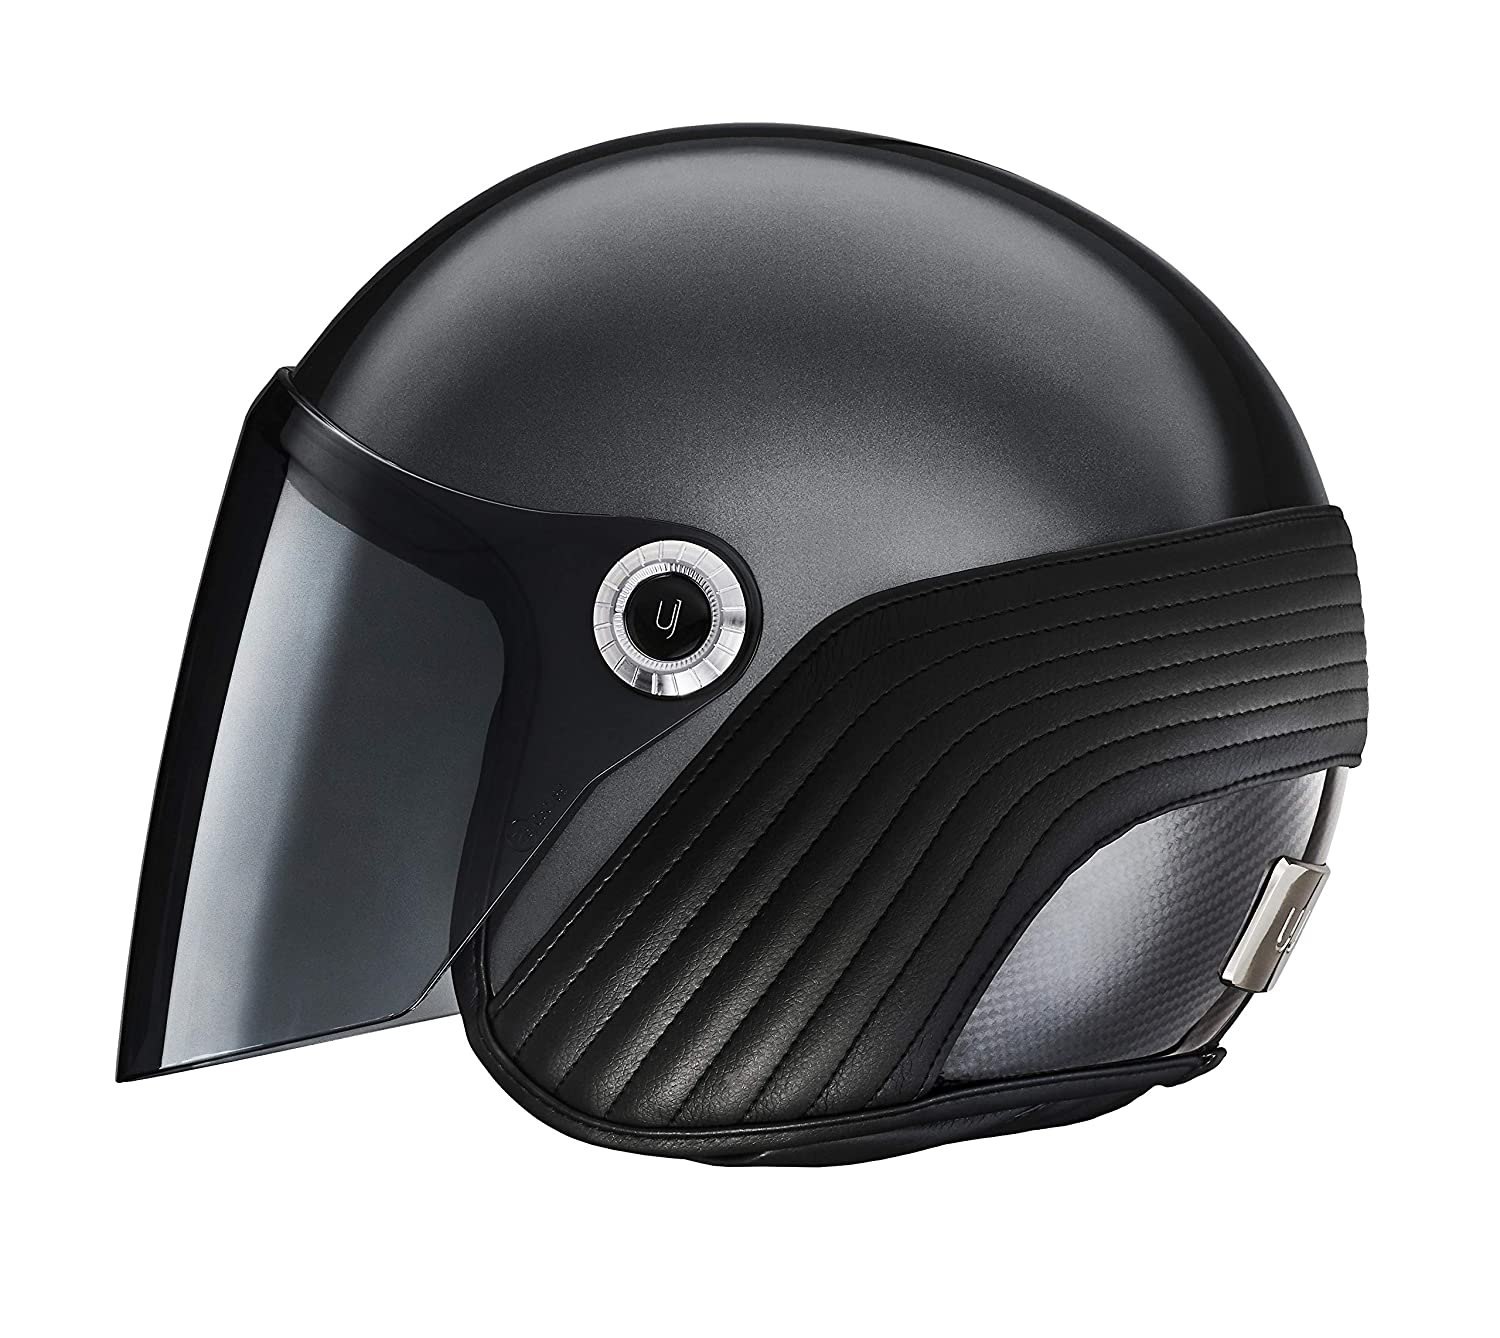 From top Fashion Designer Scooter Lightweight Carbon Motorcycle riders and Bikers XXL, Uptown Black Ujet Premium slim open-face Helmet Motorbike For Moped